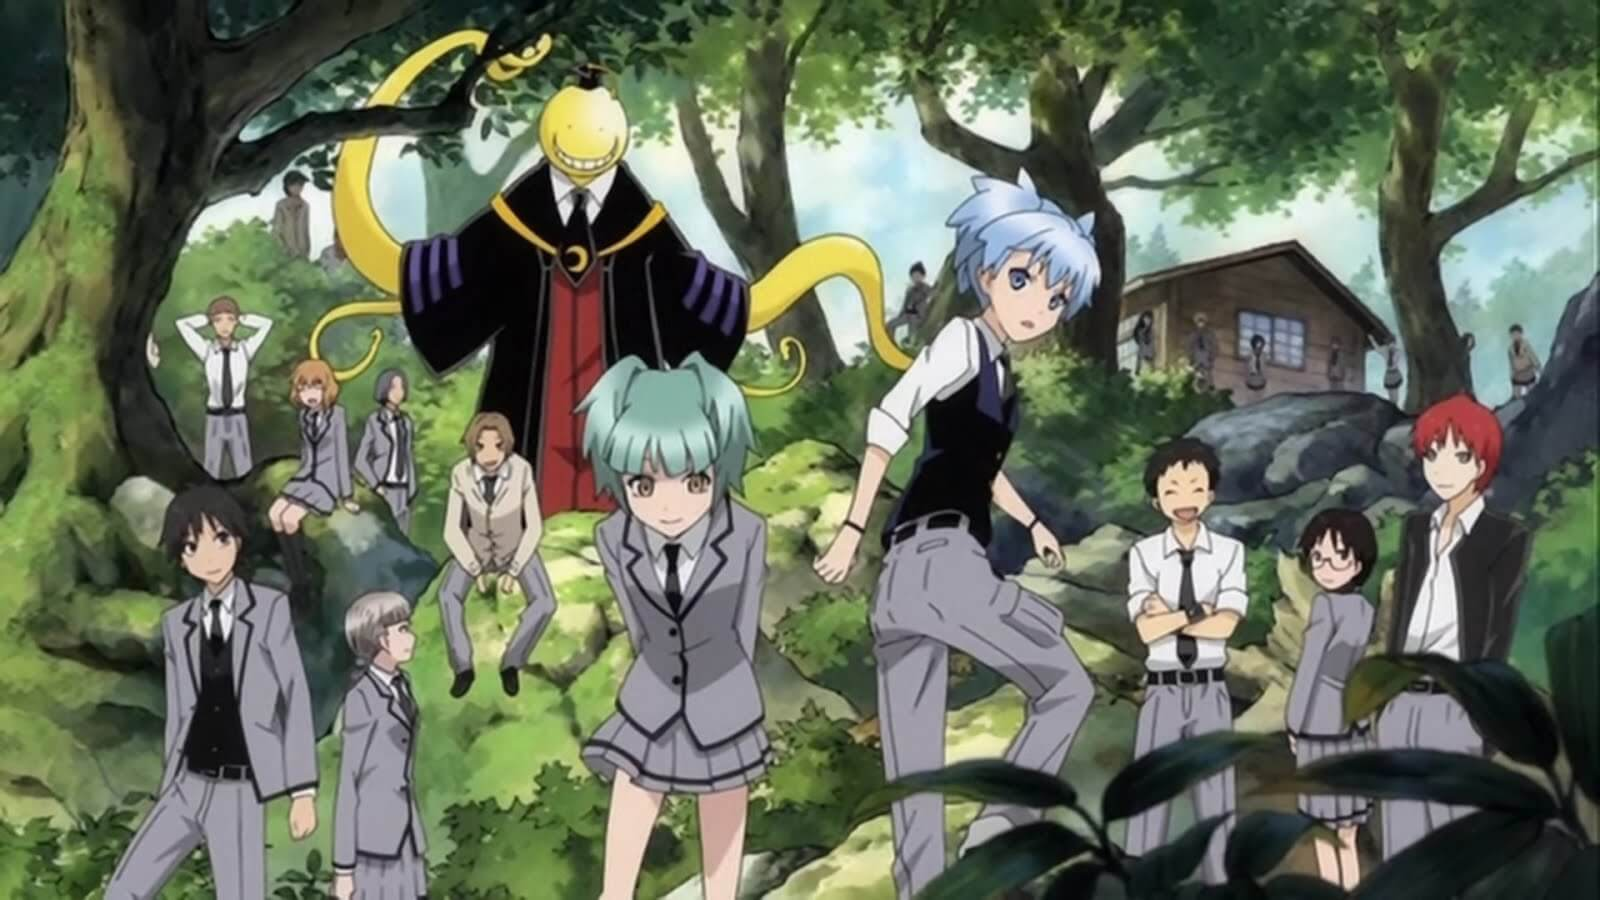 Descargar Assassination Classroom Segunda Temporada anime subtitulado en español